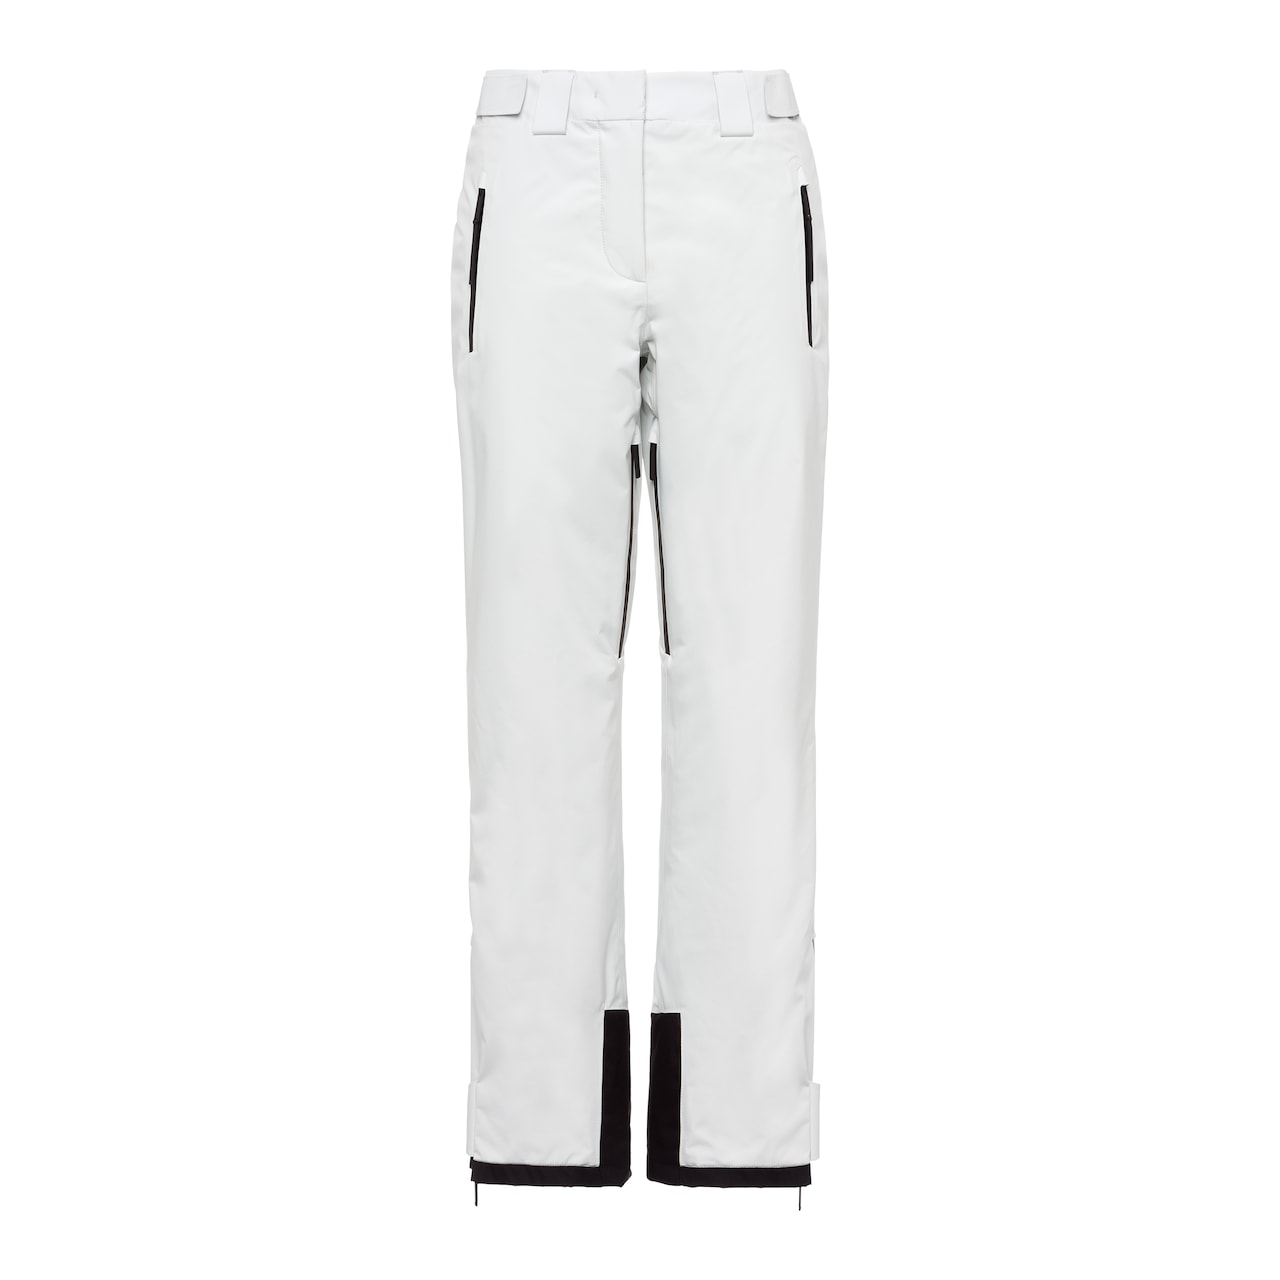 Prada LR-HX018 technical ski fabric trousers 1